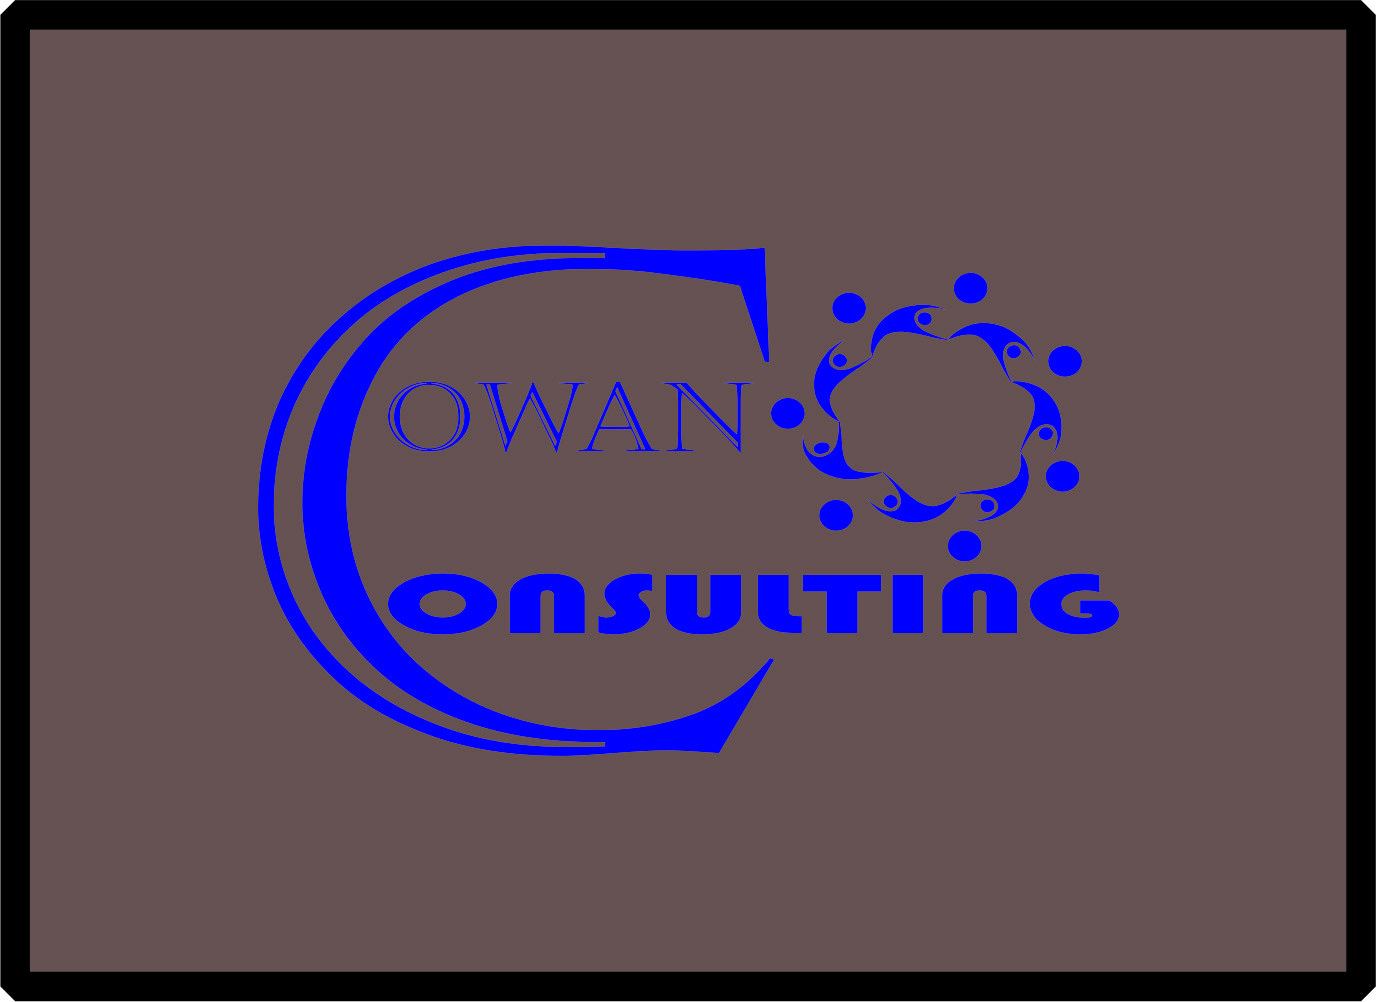 Logo Design by Teguh Hanuraga - Entry No. 17 in the Logo Design Contest Fun Logo Design for Cowan Environmental Consulting.